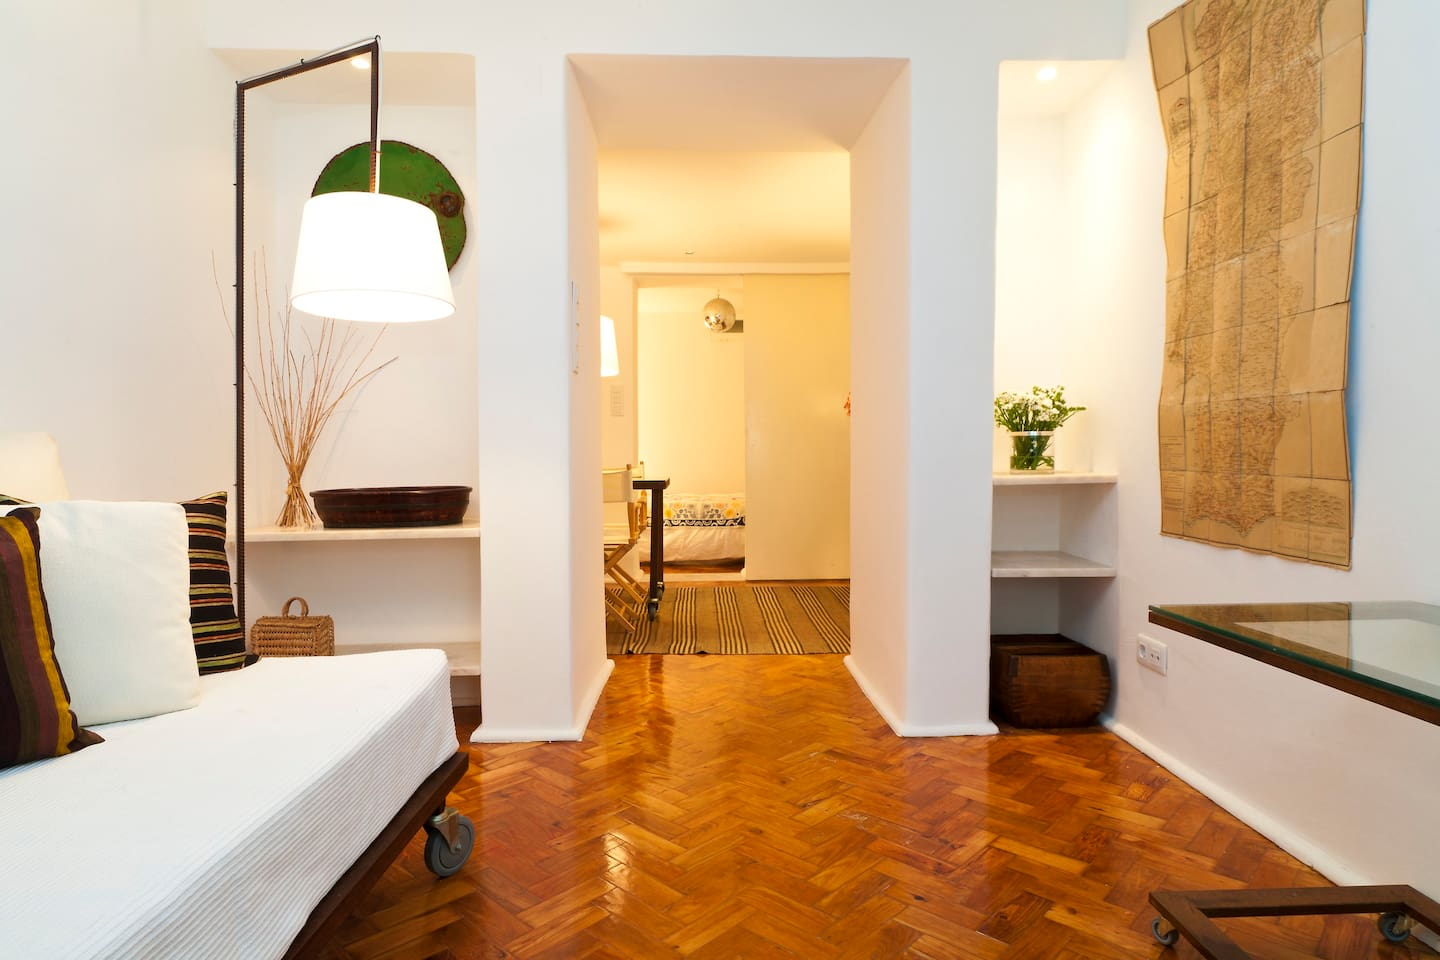 Living Room / Dining Room / Bedroom - Beautiful parquet and marble flooring throughout